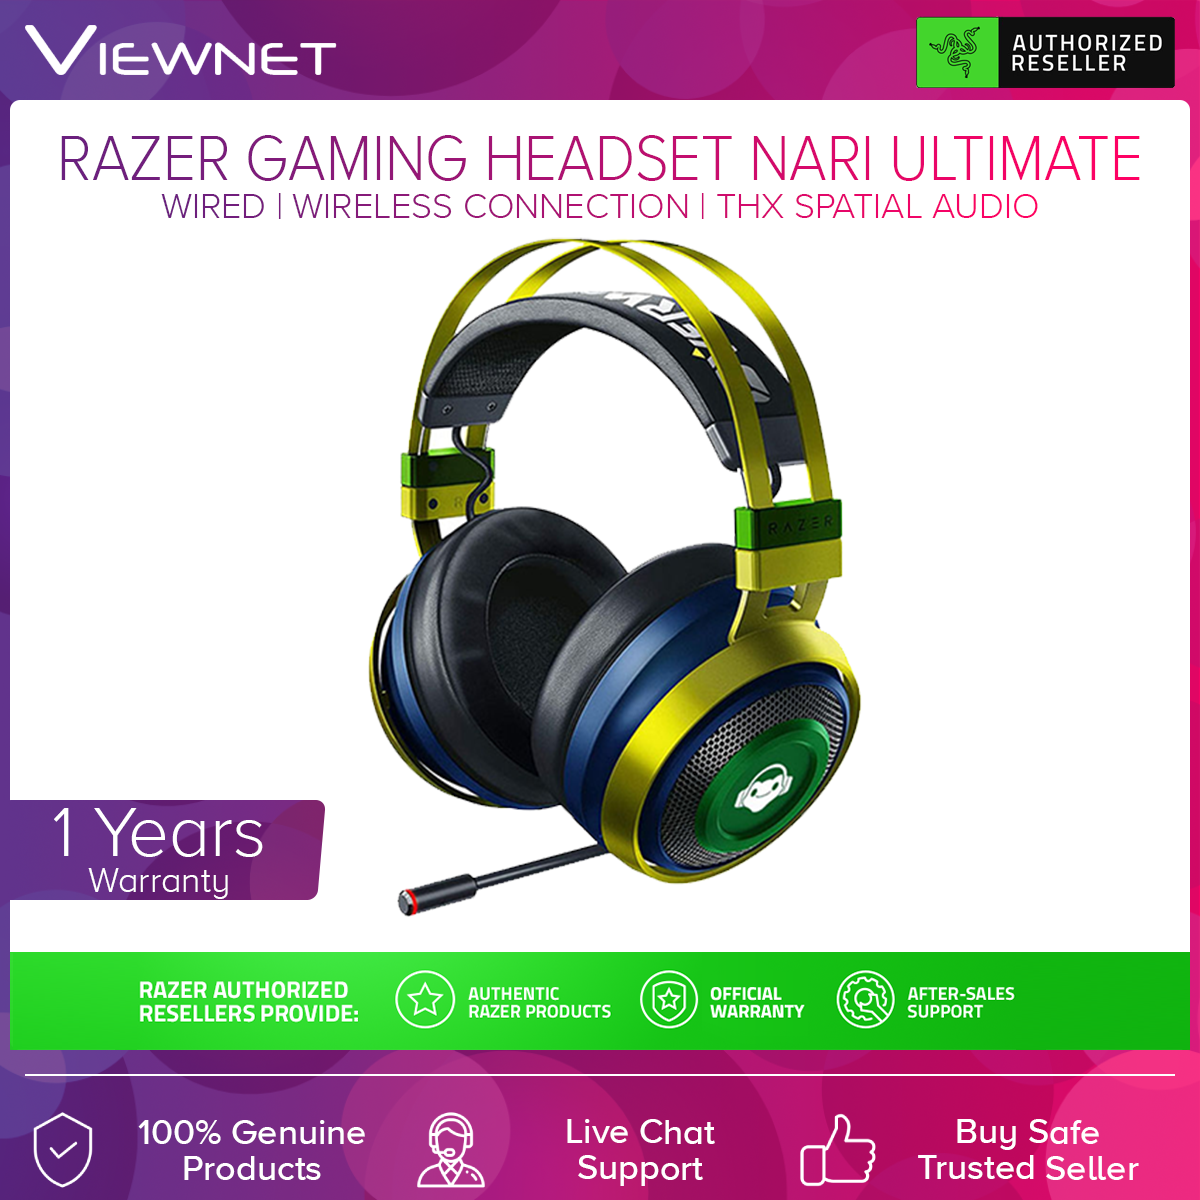 Razer Gaming Headset Nari Ultimate Overwatch Luico Edition with Razer Hypersense, THX Spatial Audio, Aluminum Frame, Cooling Gel Cushions, 2.4GHz Wireless Connection or 3.5MM Audio Jack